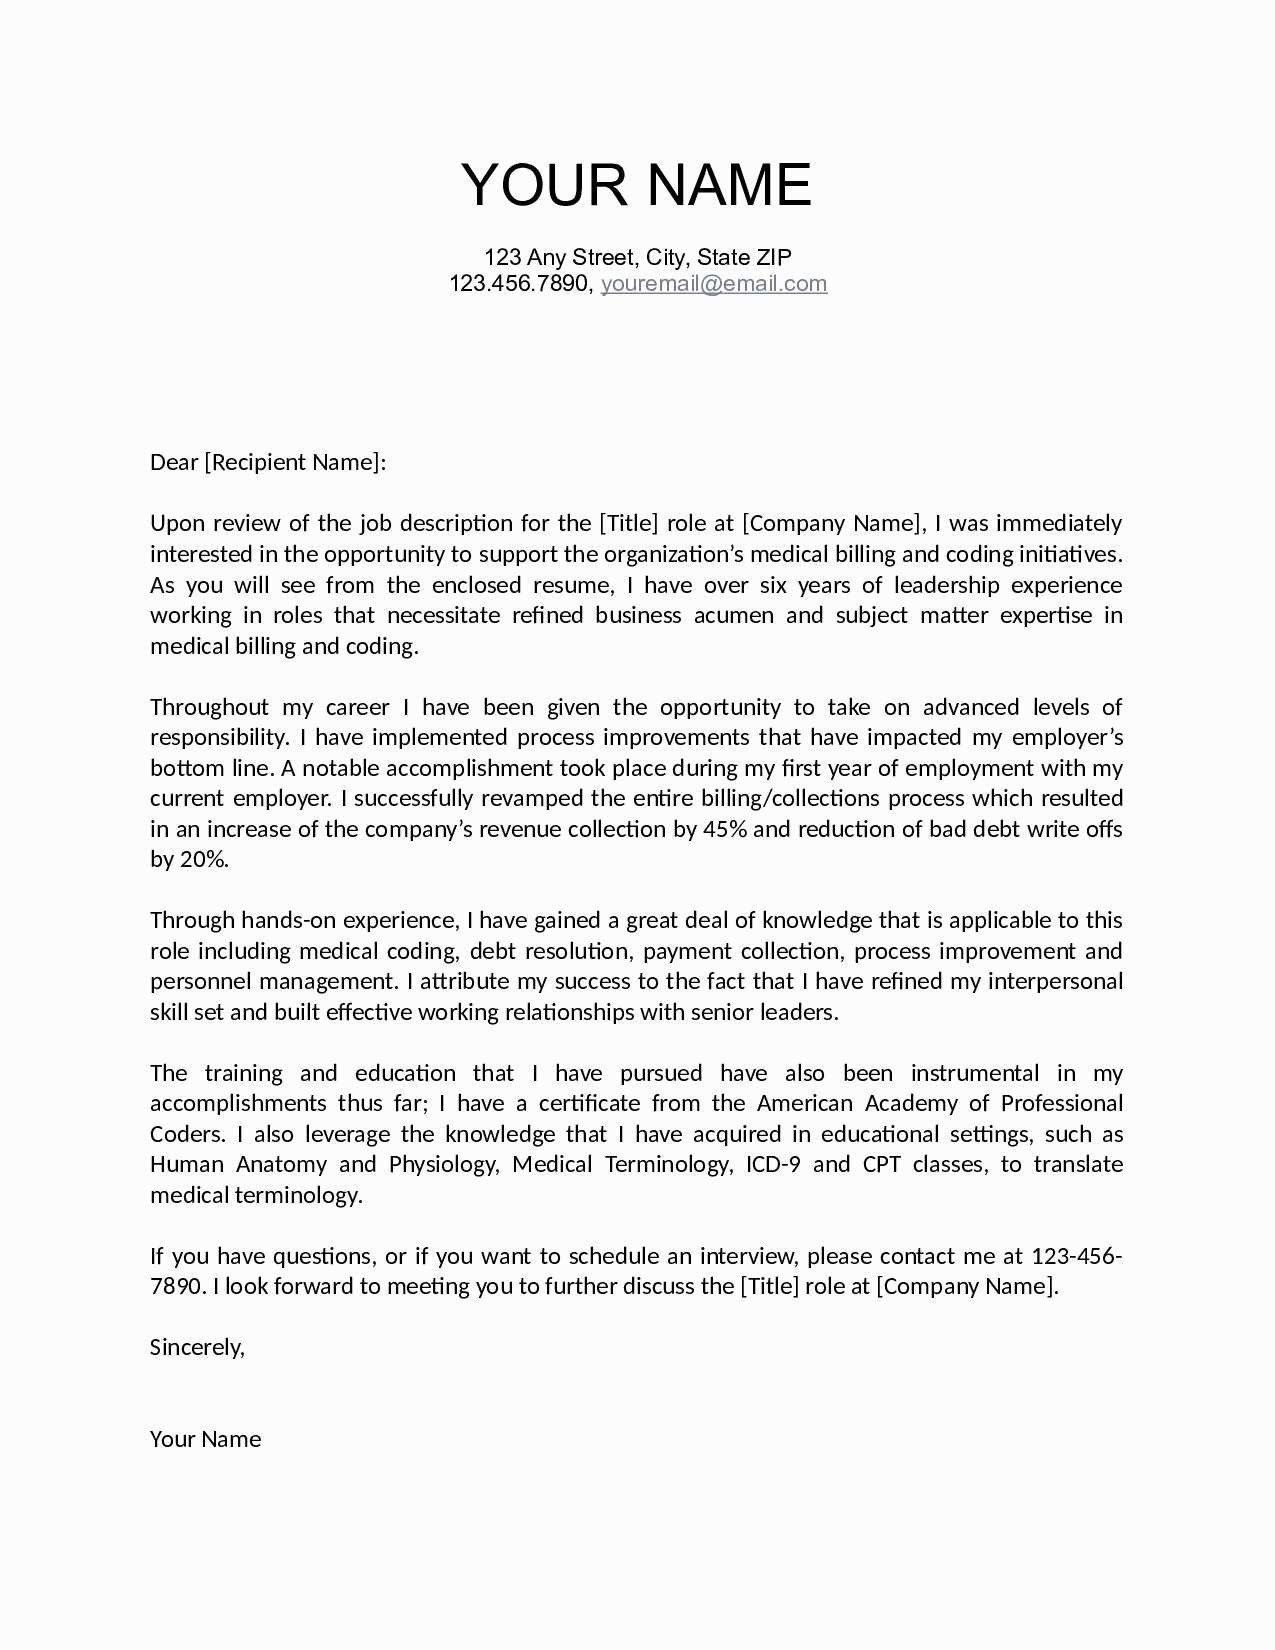 Mla Cover Letter Template - Writing A Letter Intent for A Job New Job Fer Letter Template Us